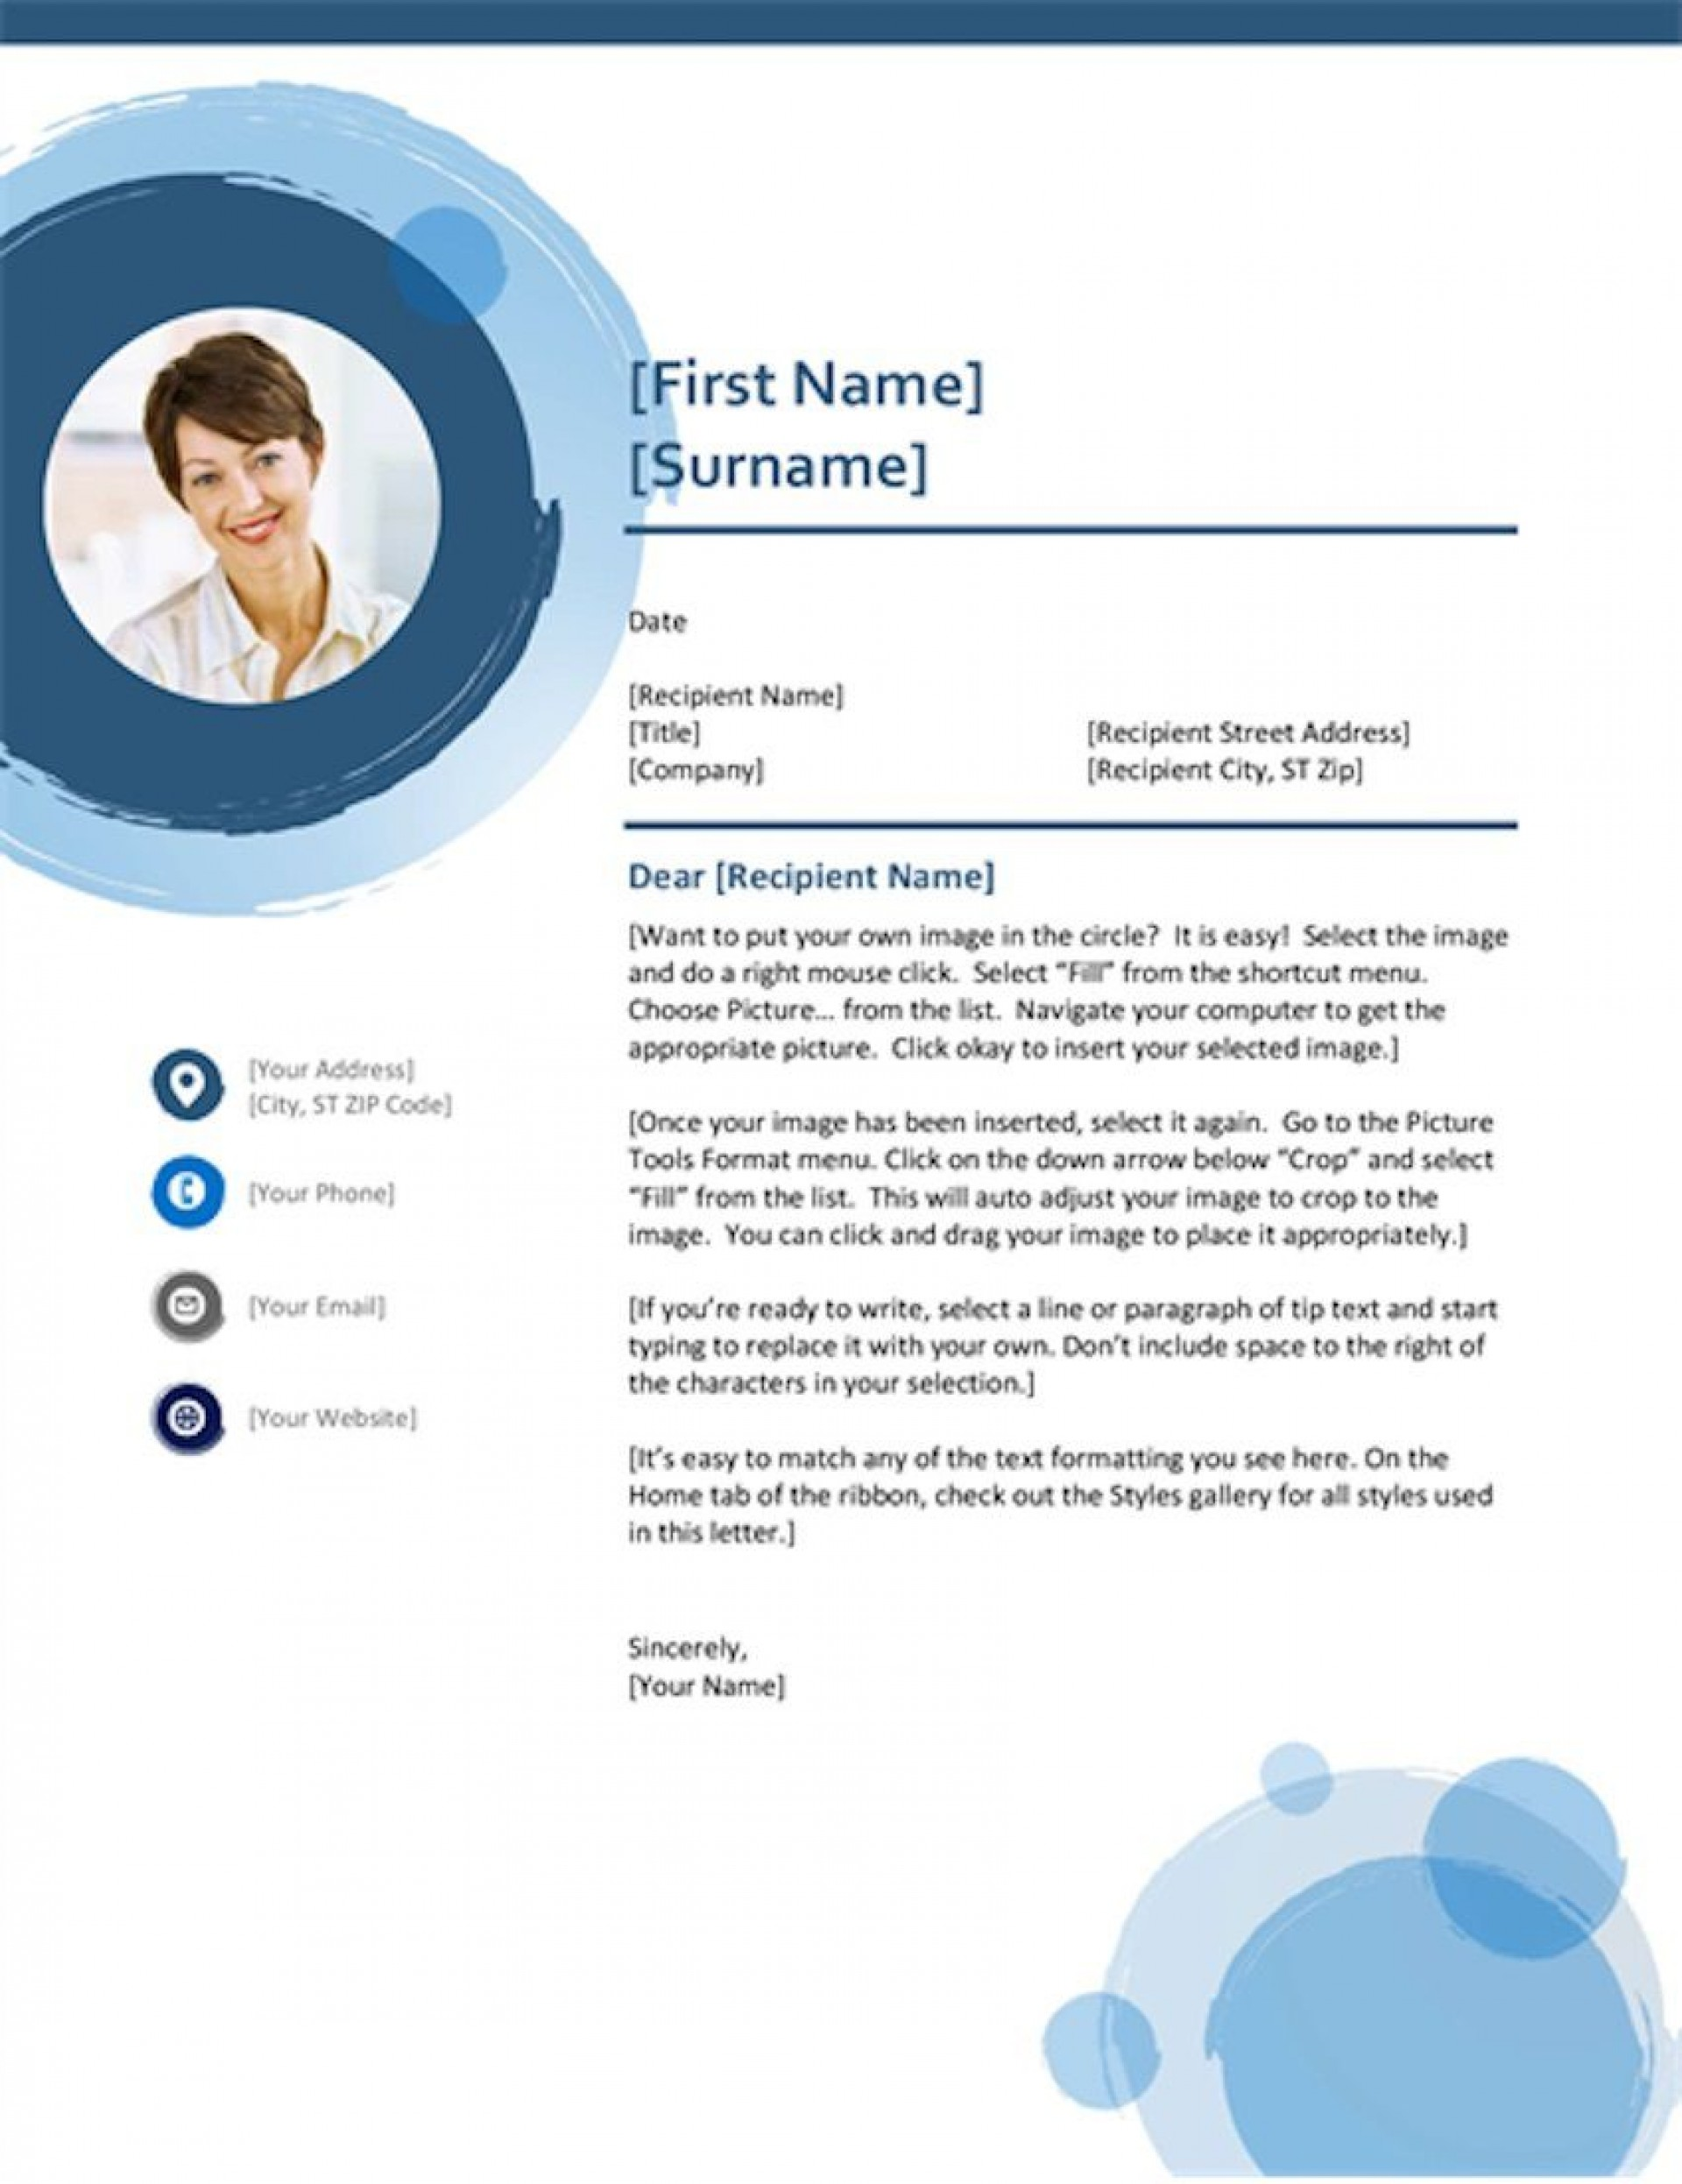 003 Imposing Resume Cover Letter Template Free Image  Simple Online Microsoft1920